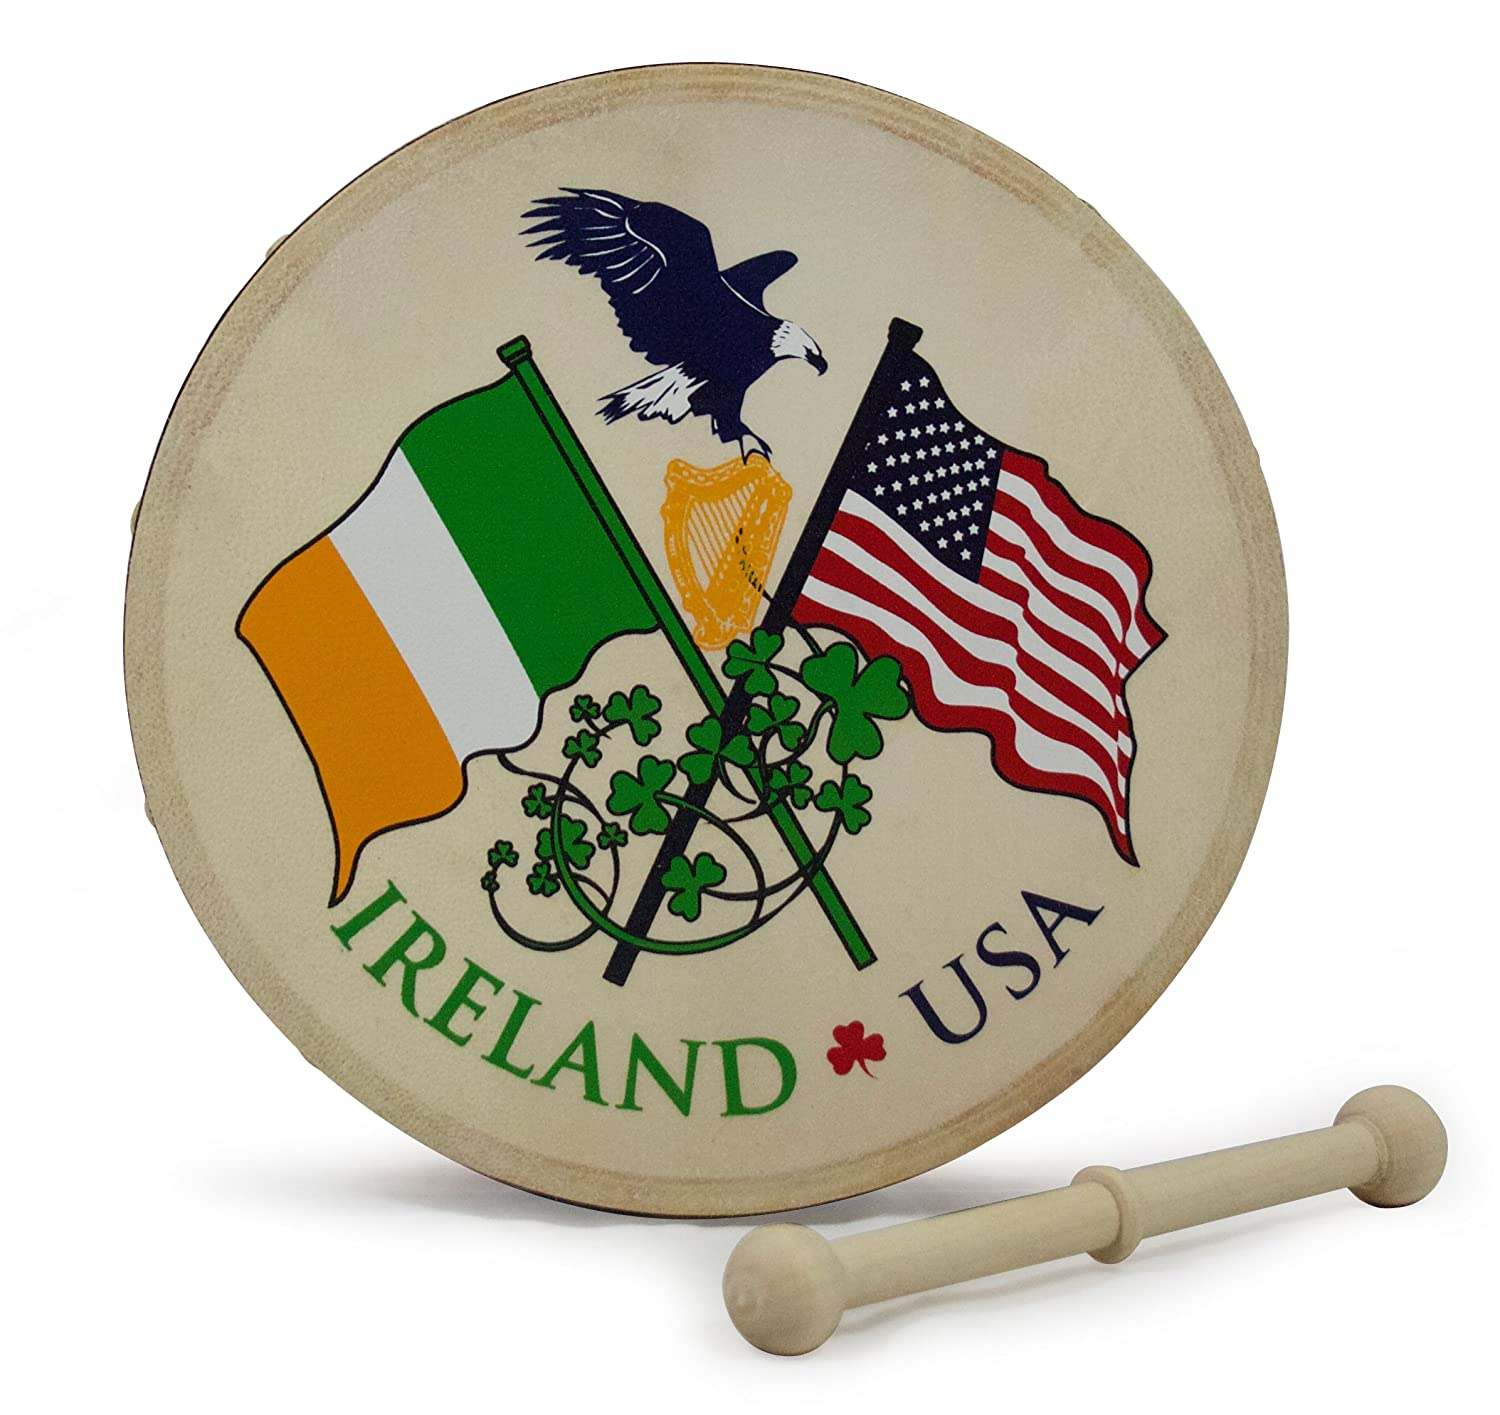 Waltons 8 Inch USA IRELAND Bodhrán - Handcrafted Irish Instrument - Crisp & Musical Tone - Hardwood Beater Included w/Purchase